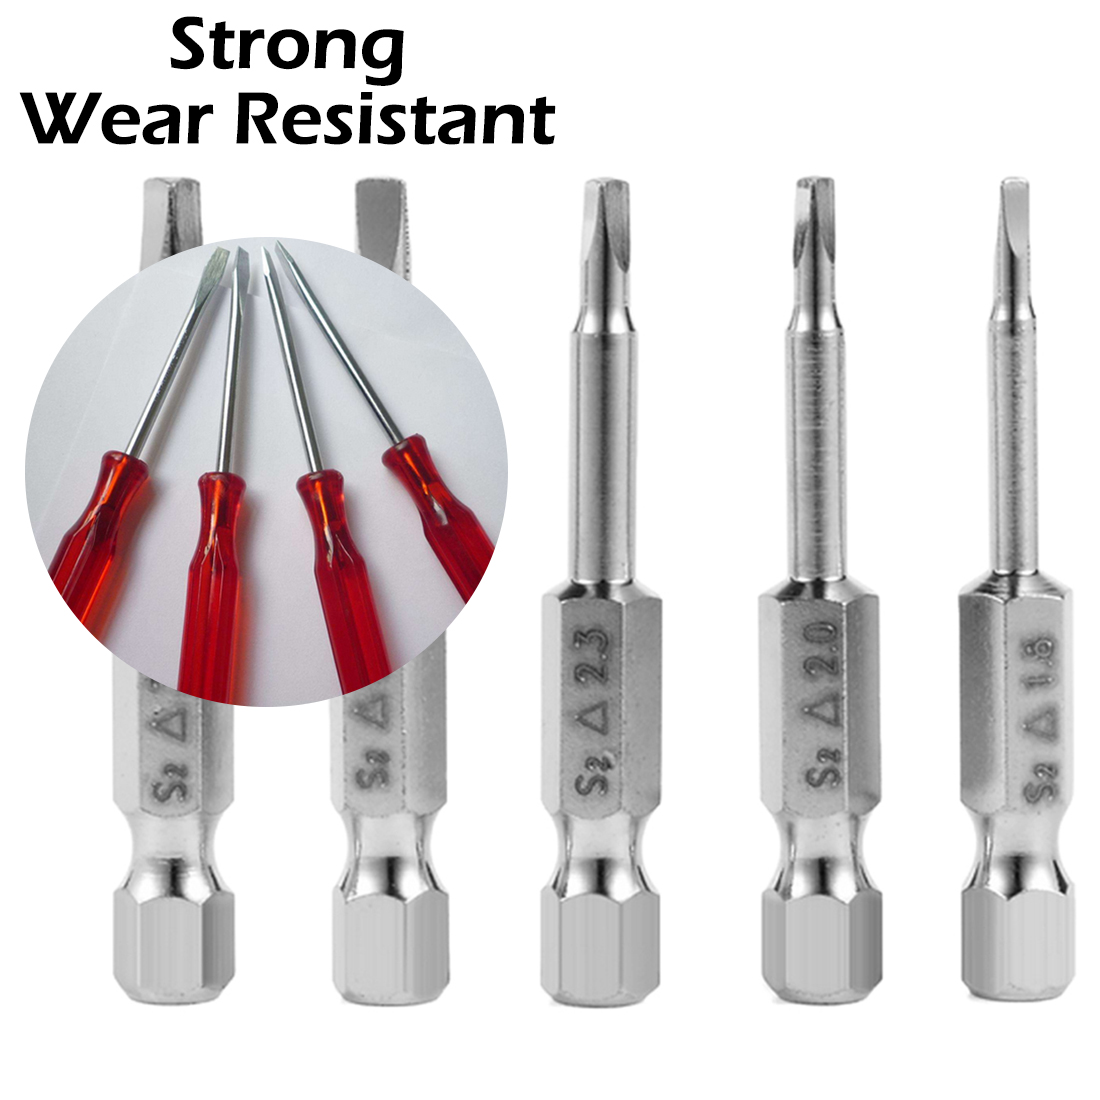 Electric Screwdriver Head 5pcs S2 Alloy Steel Triangular Screw Bits Magnetic Screwdriver Bit Anti Slip Triangle Screw Head